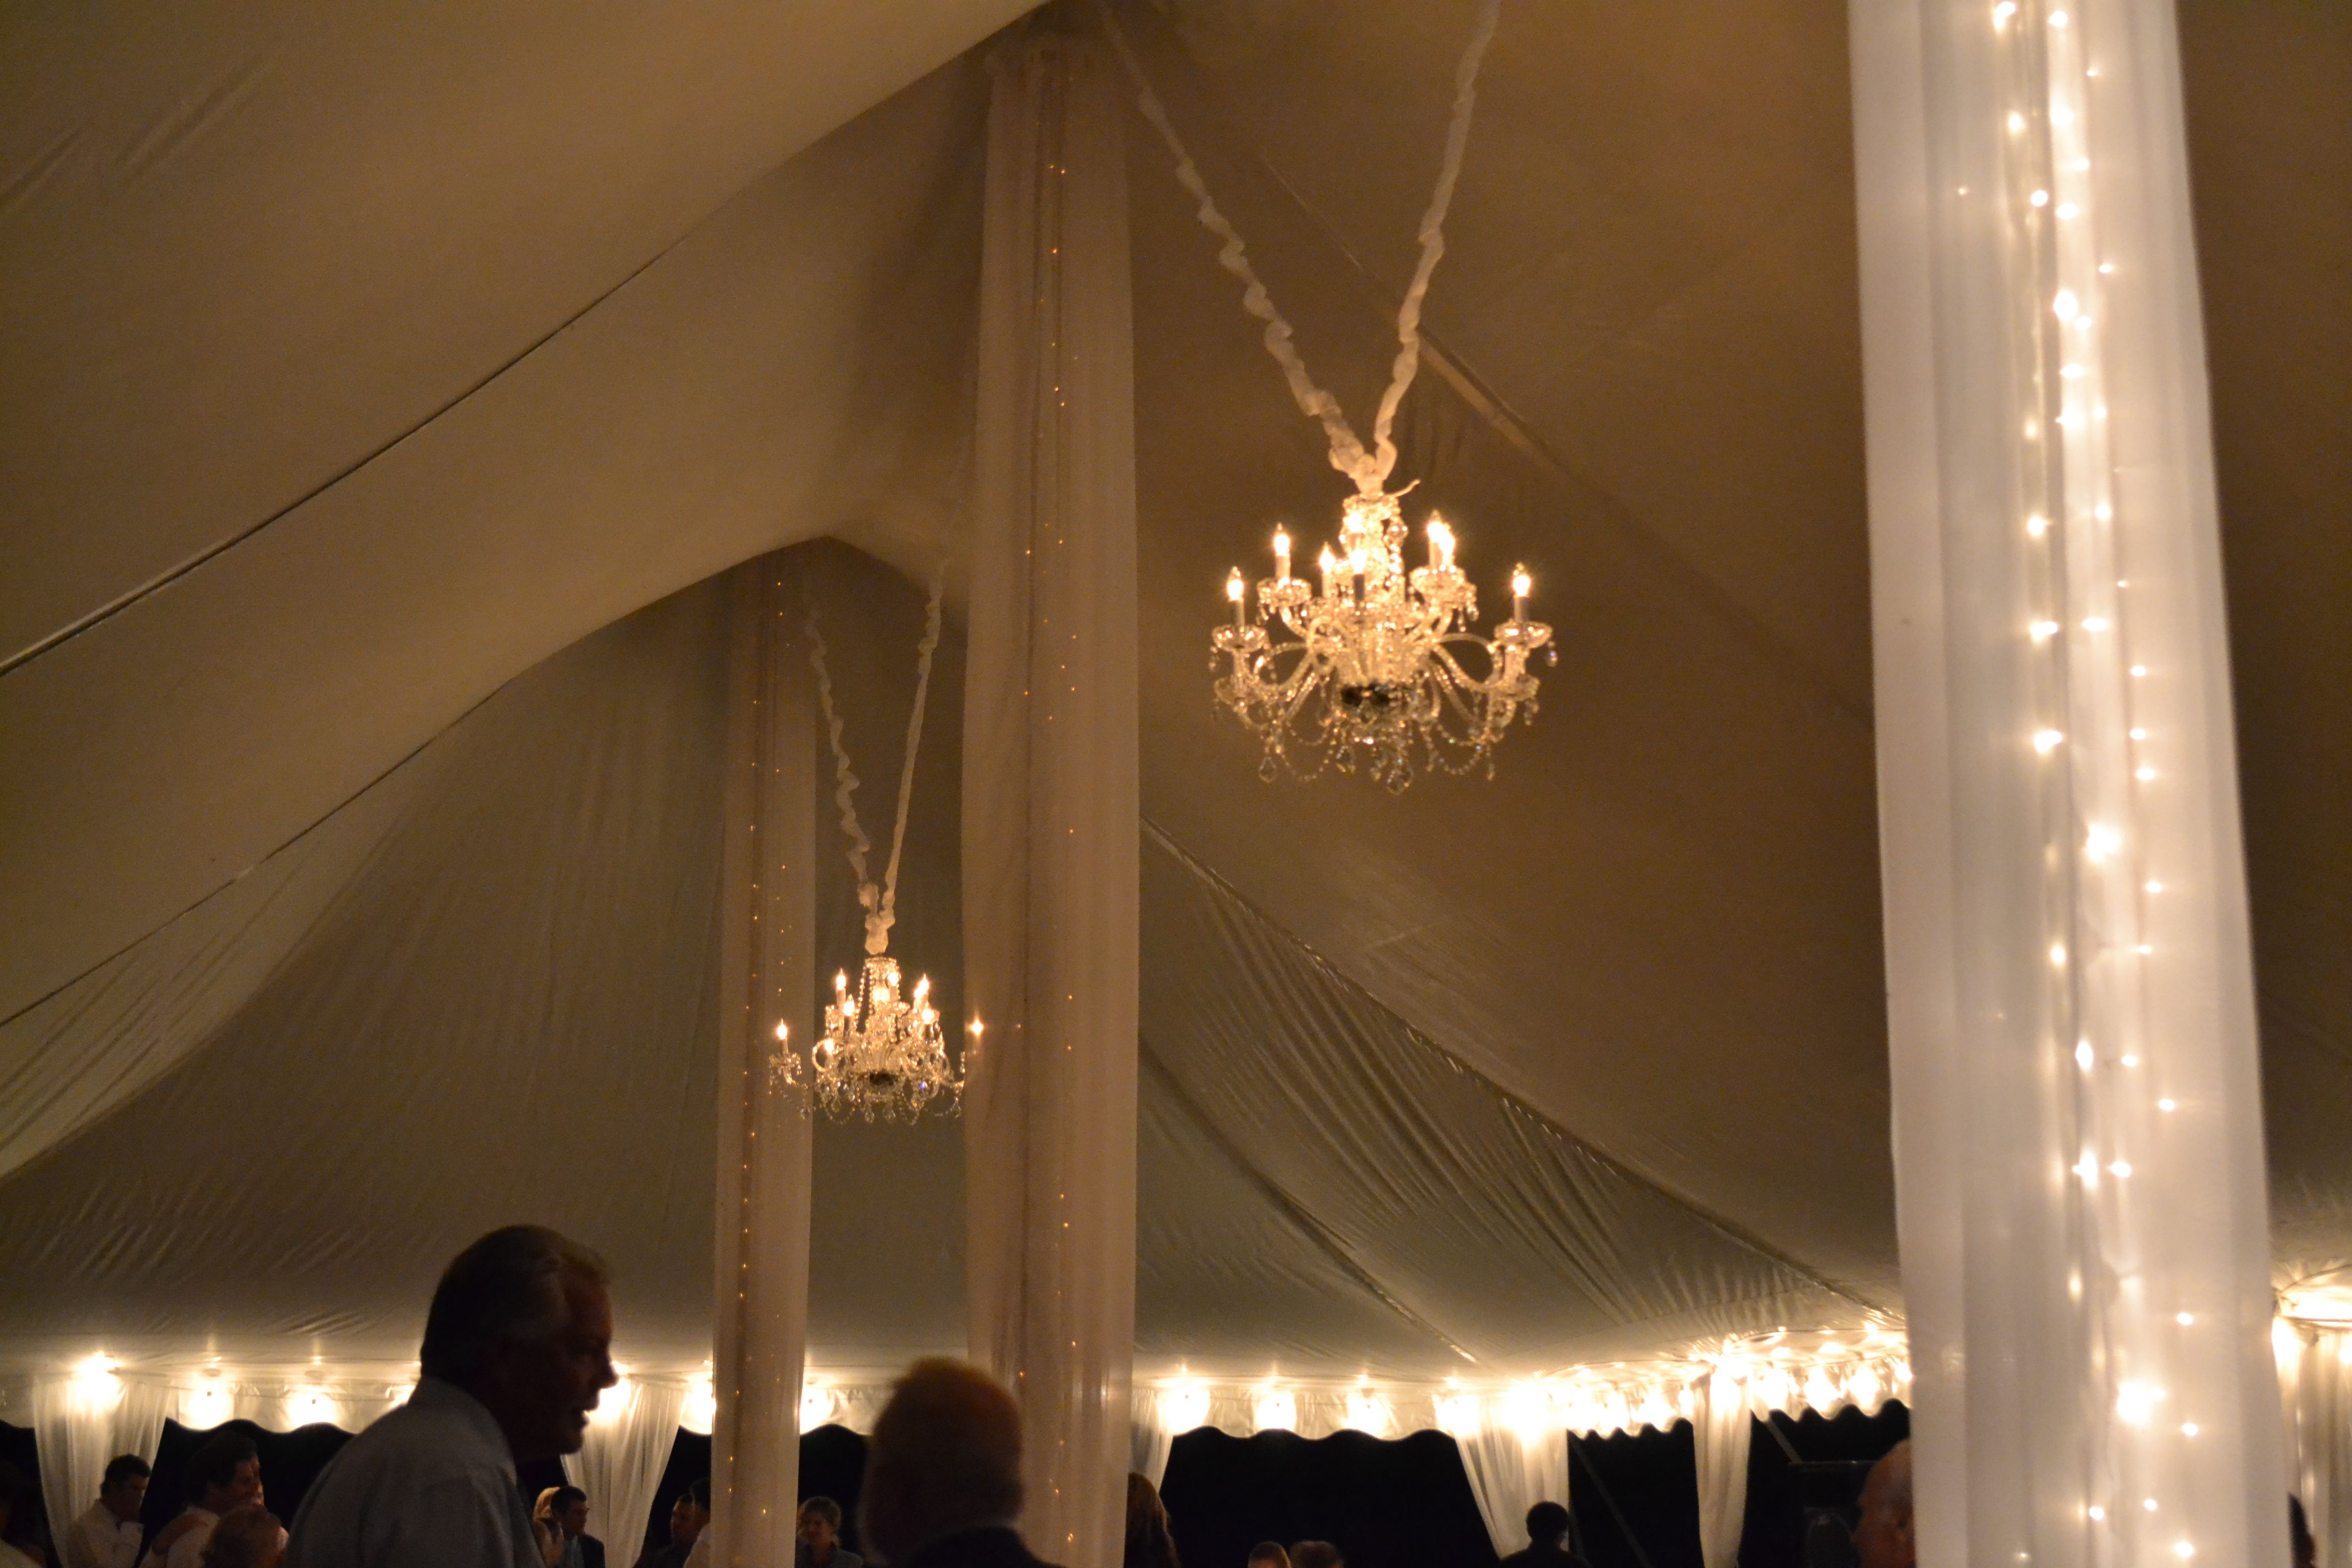 Here is a fun way to add lighting underneath your tent String